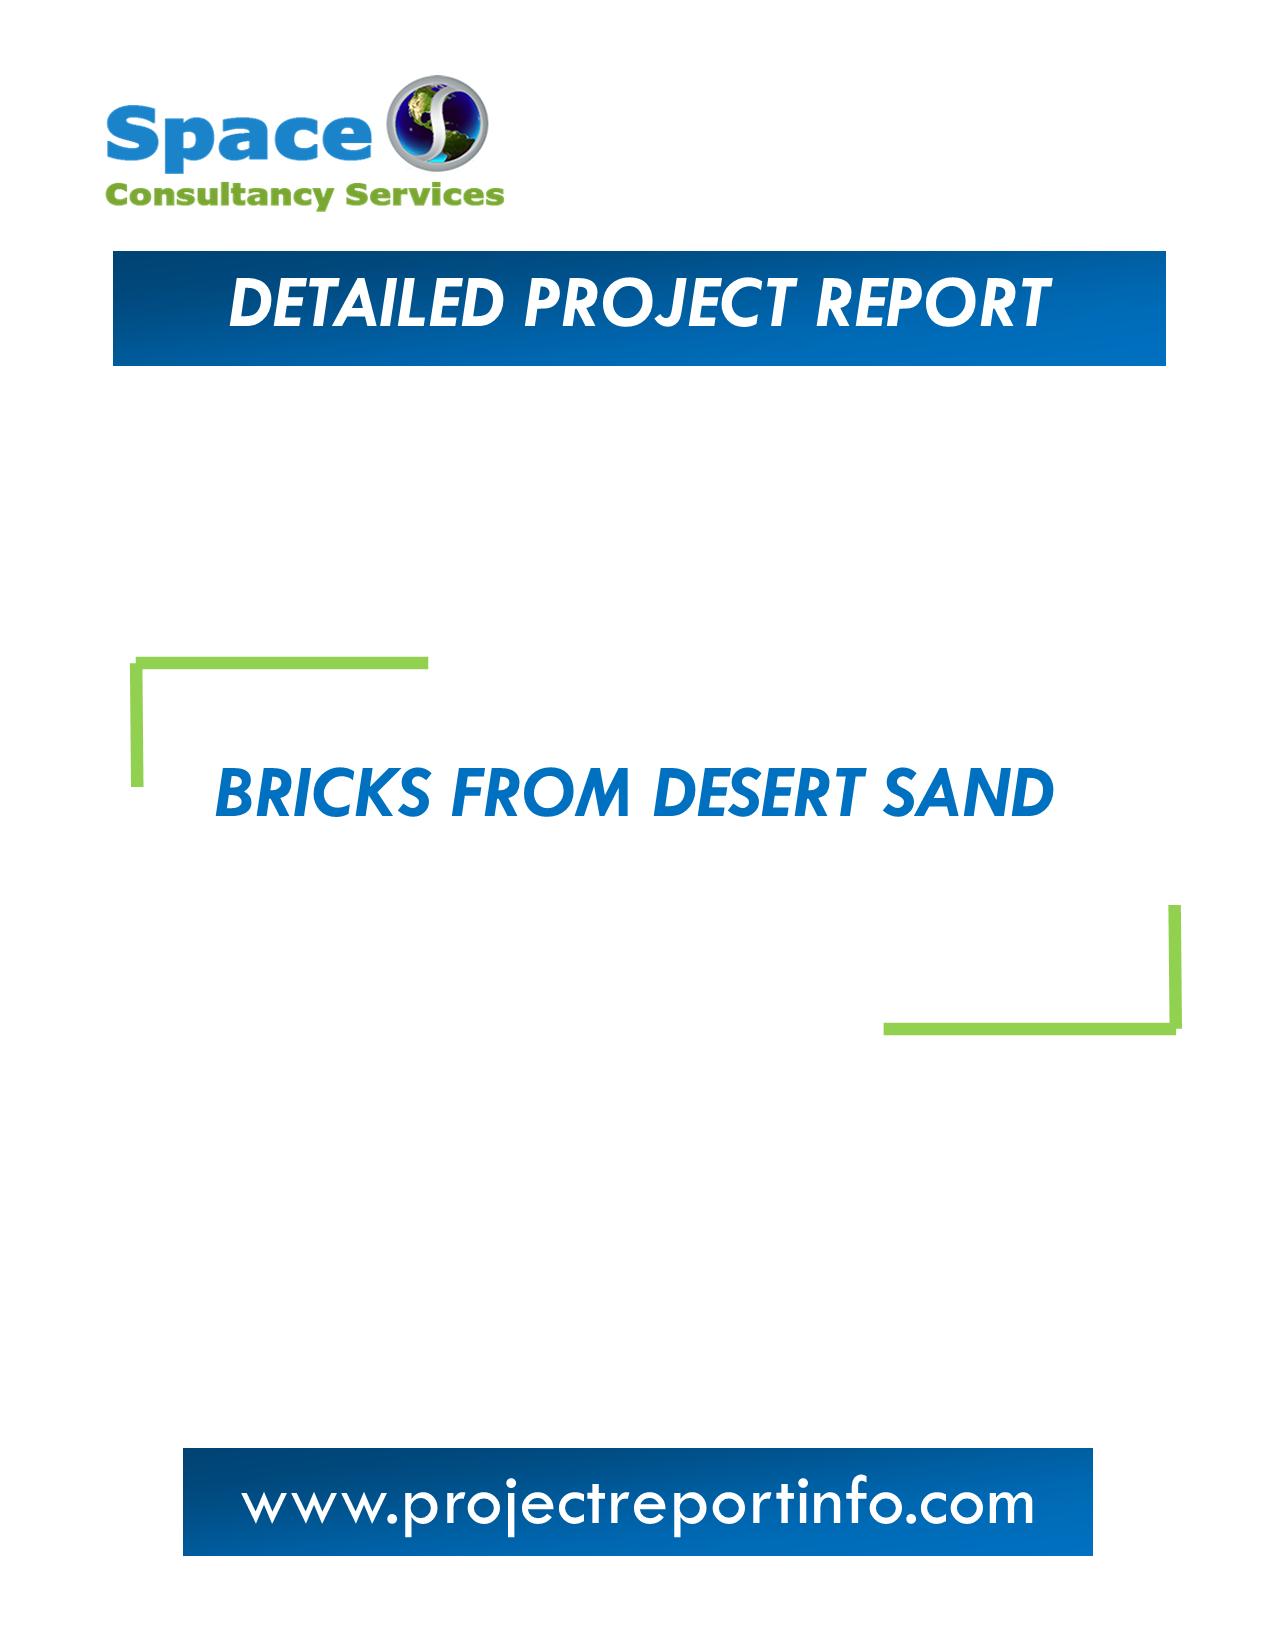 Project Report on Bricks from Desert Sand Manufacturing